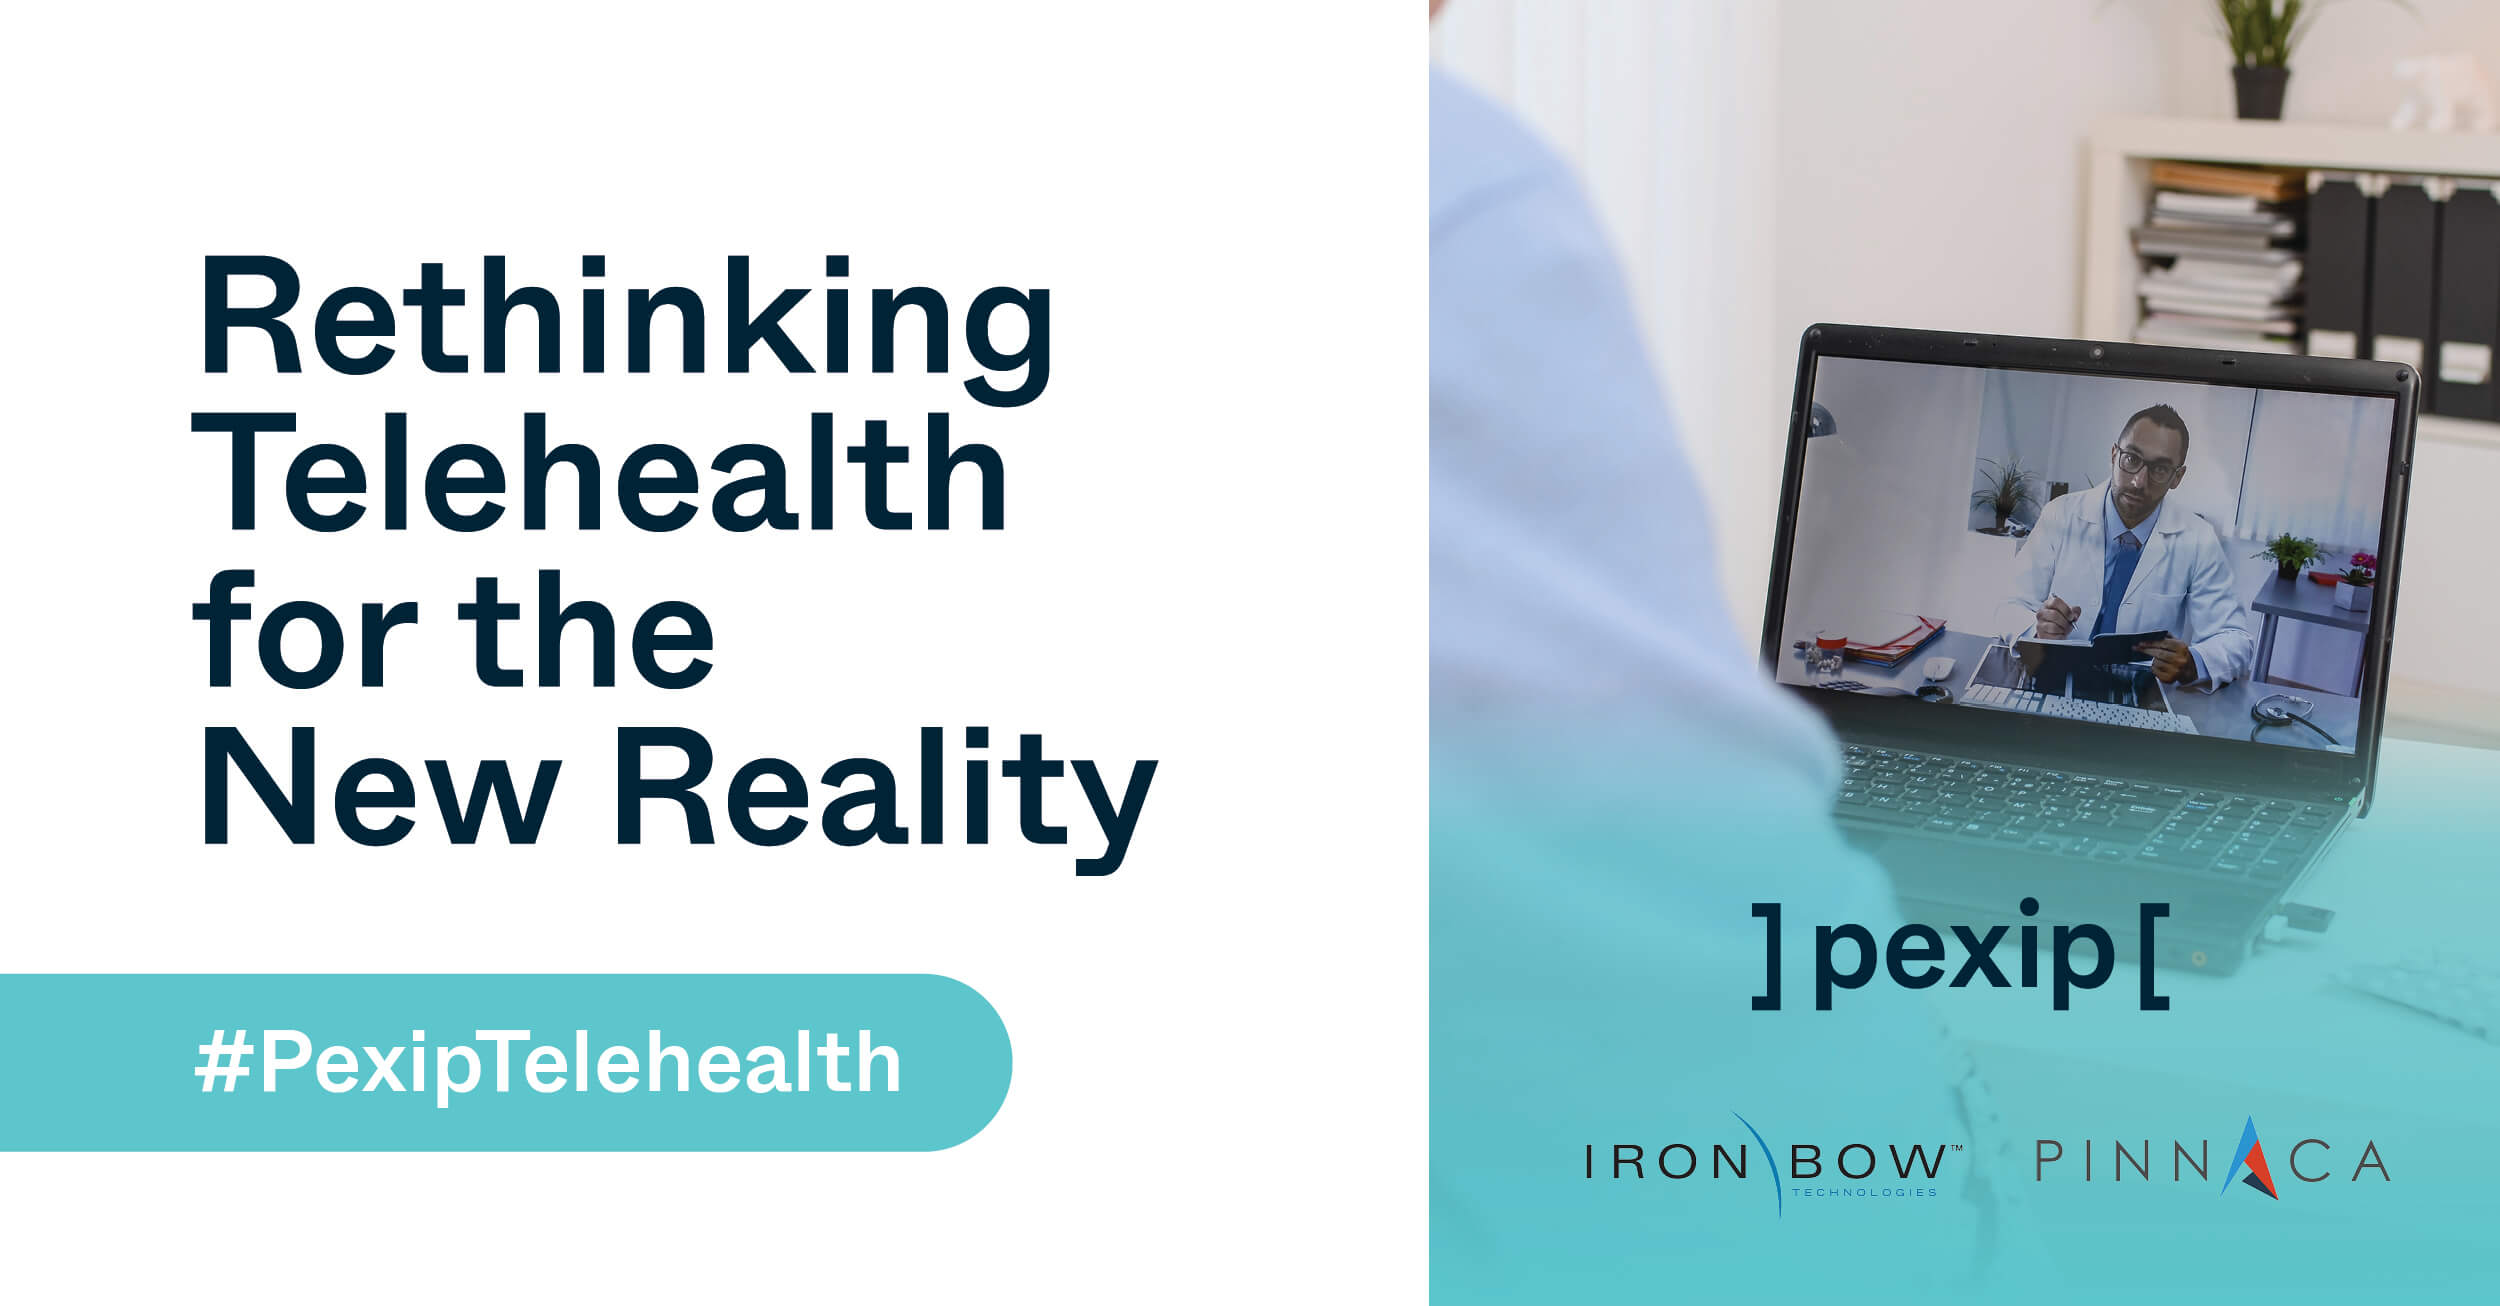 Rethinking Telehealth for the New Reality